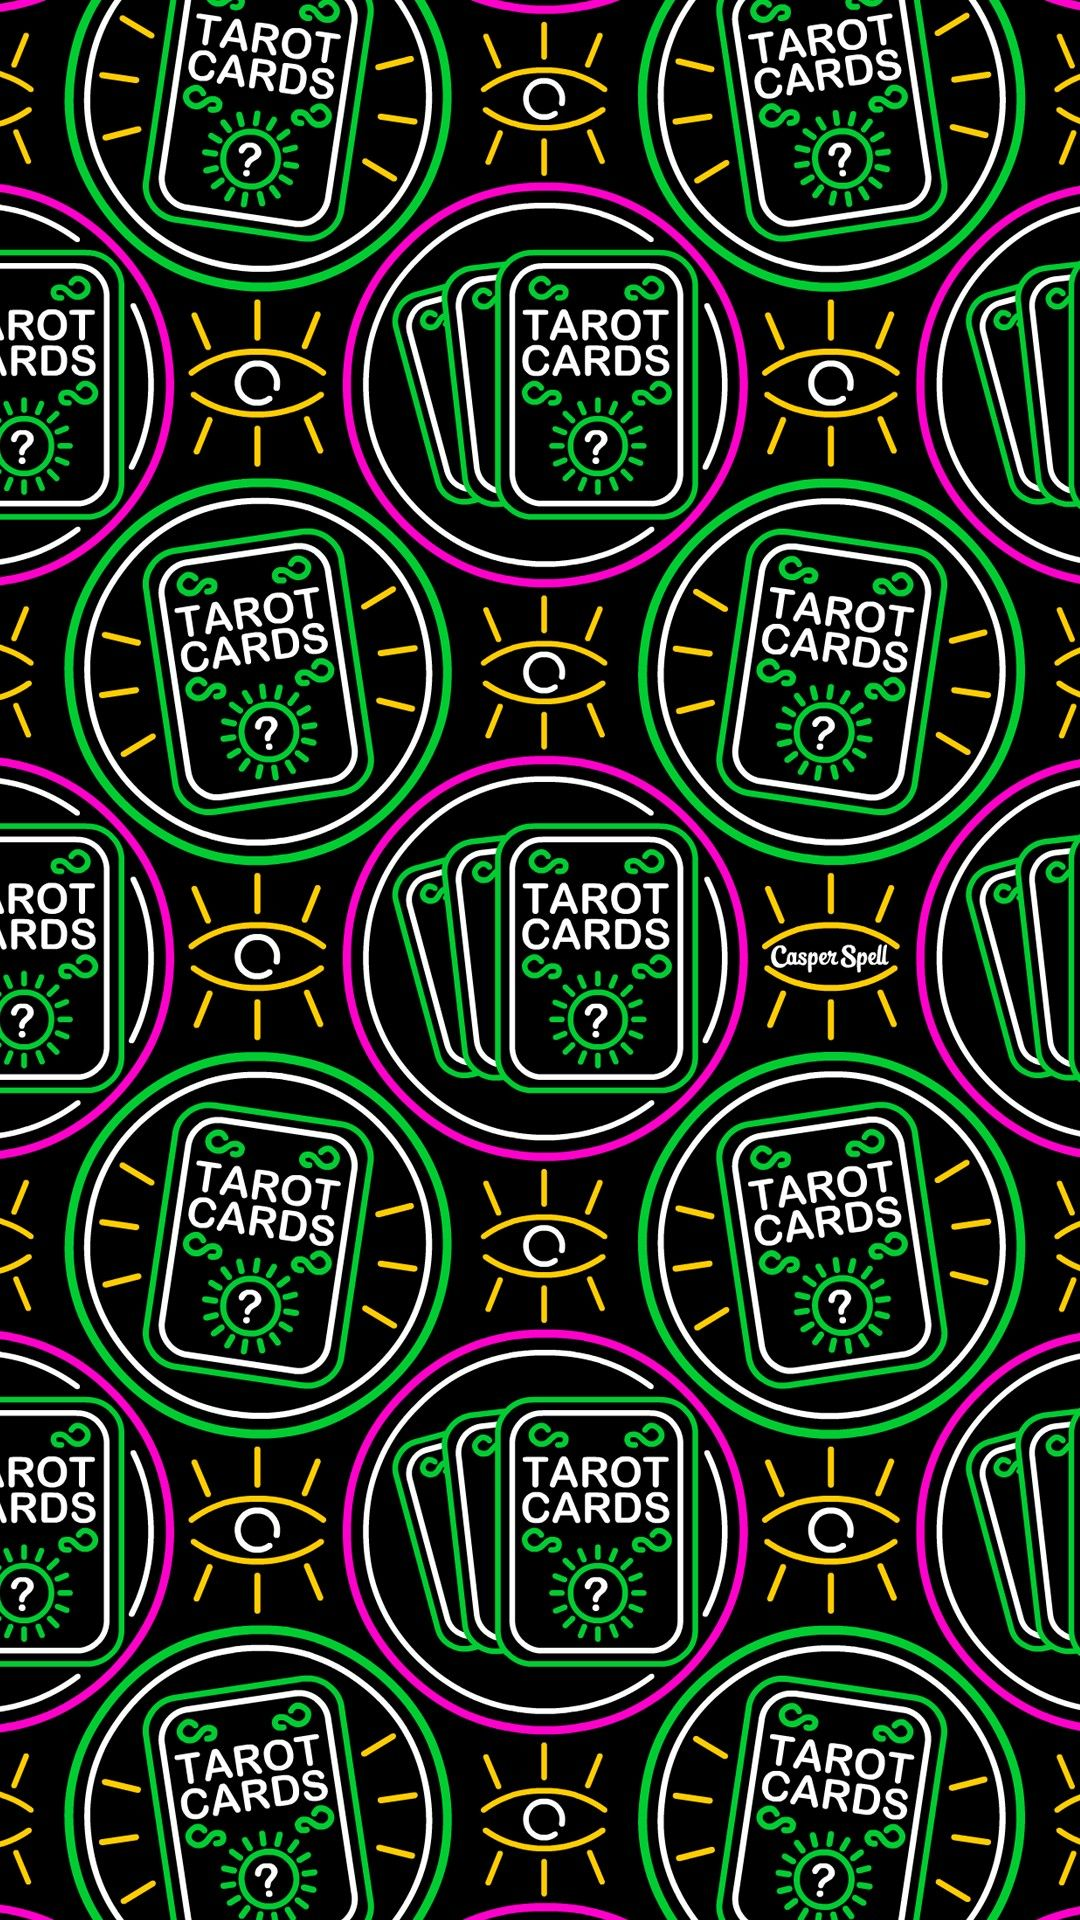 Tarot readings reader psychic medium Neon fortune teller gypsy repeat pattern patterns wallpaper background surface design illustration art drawing witch ...